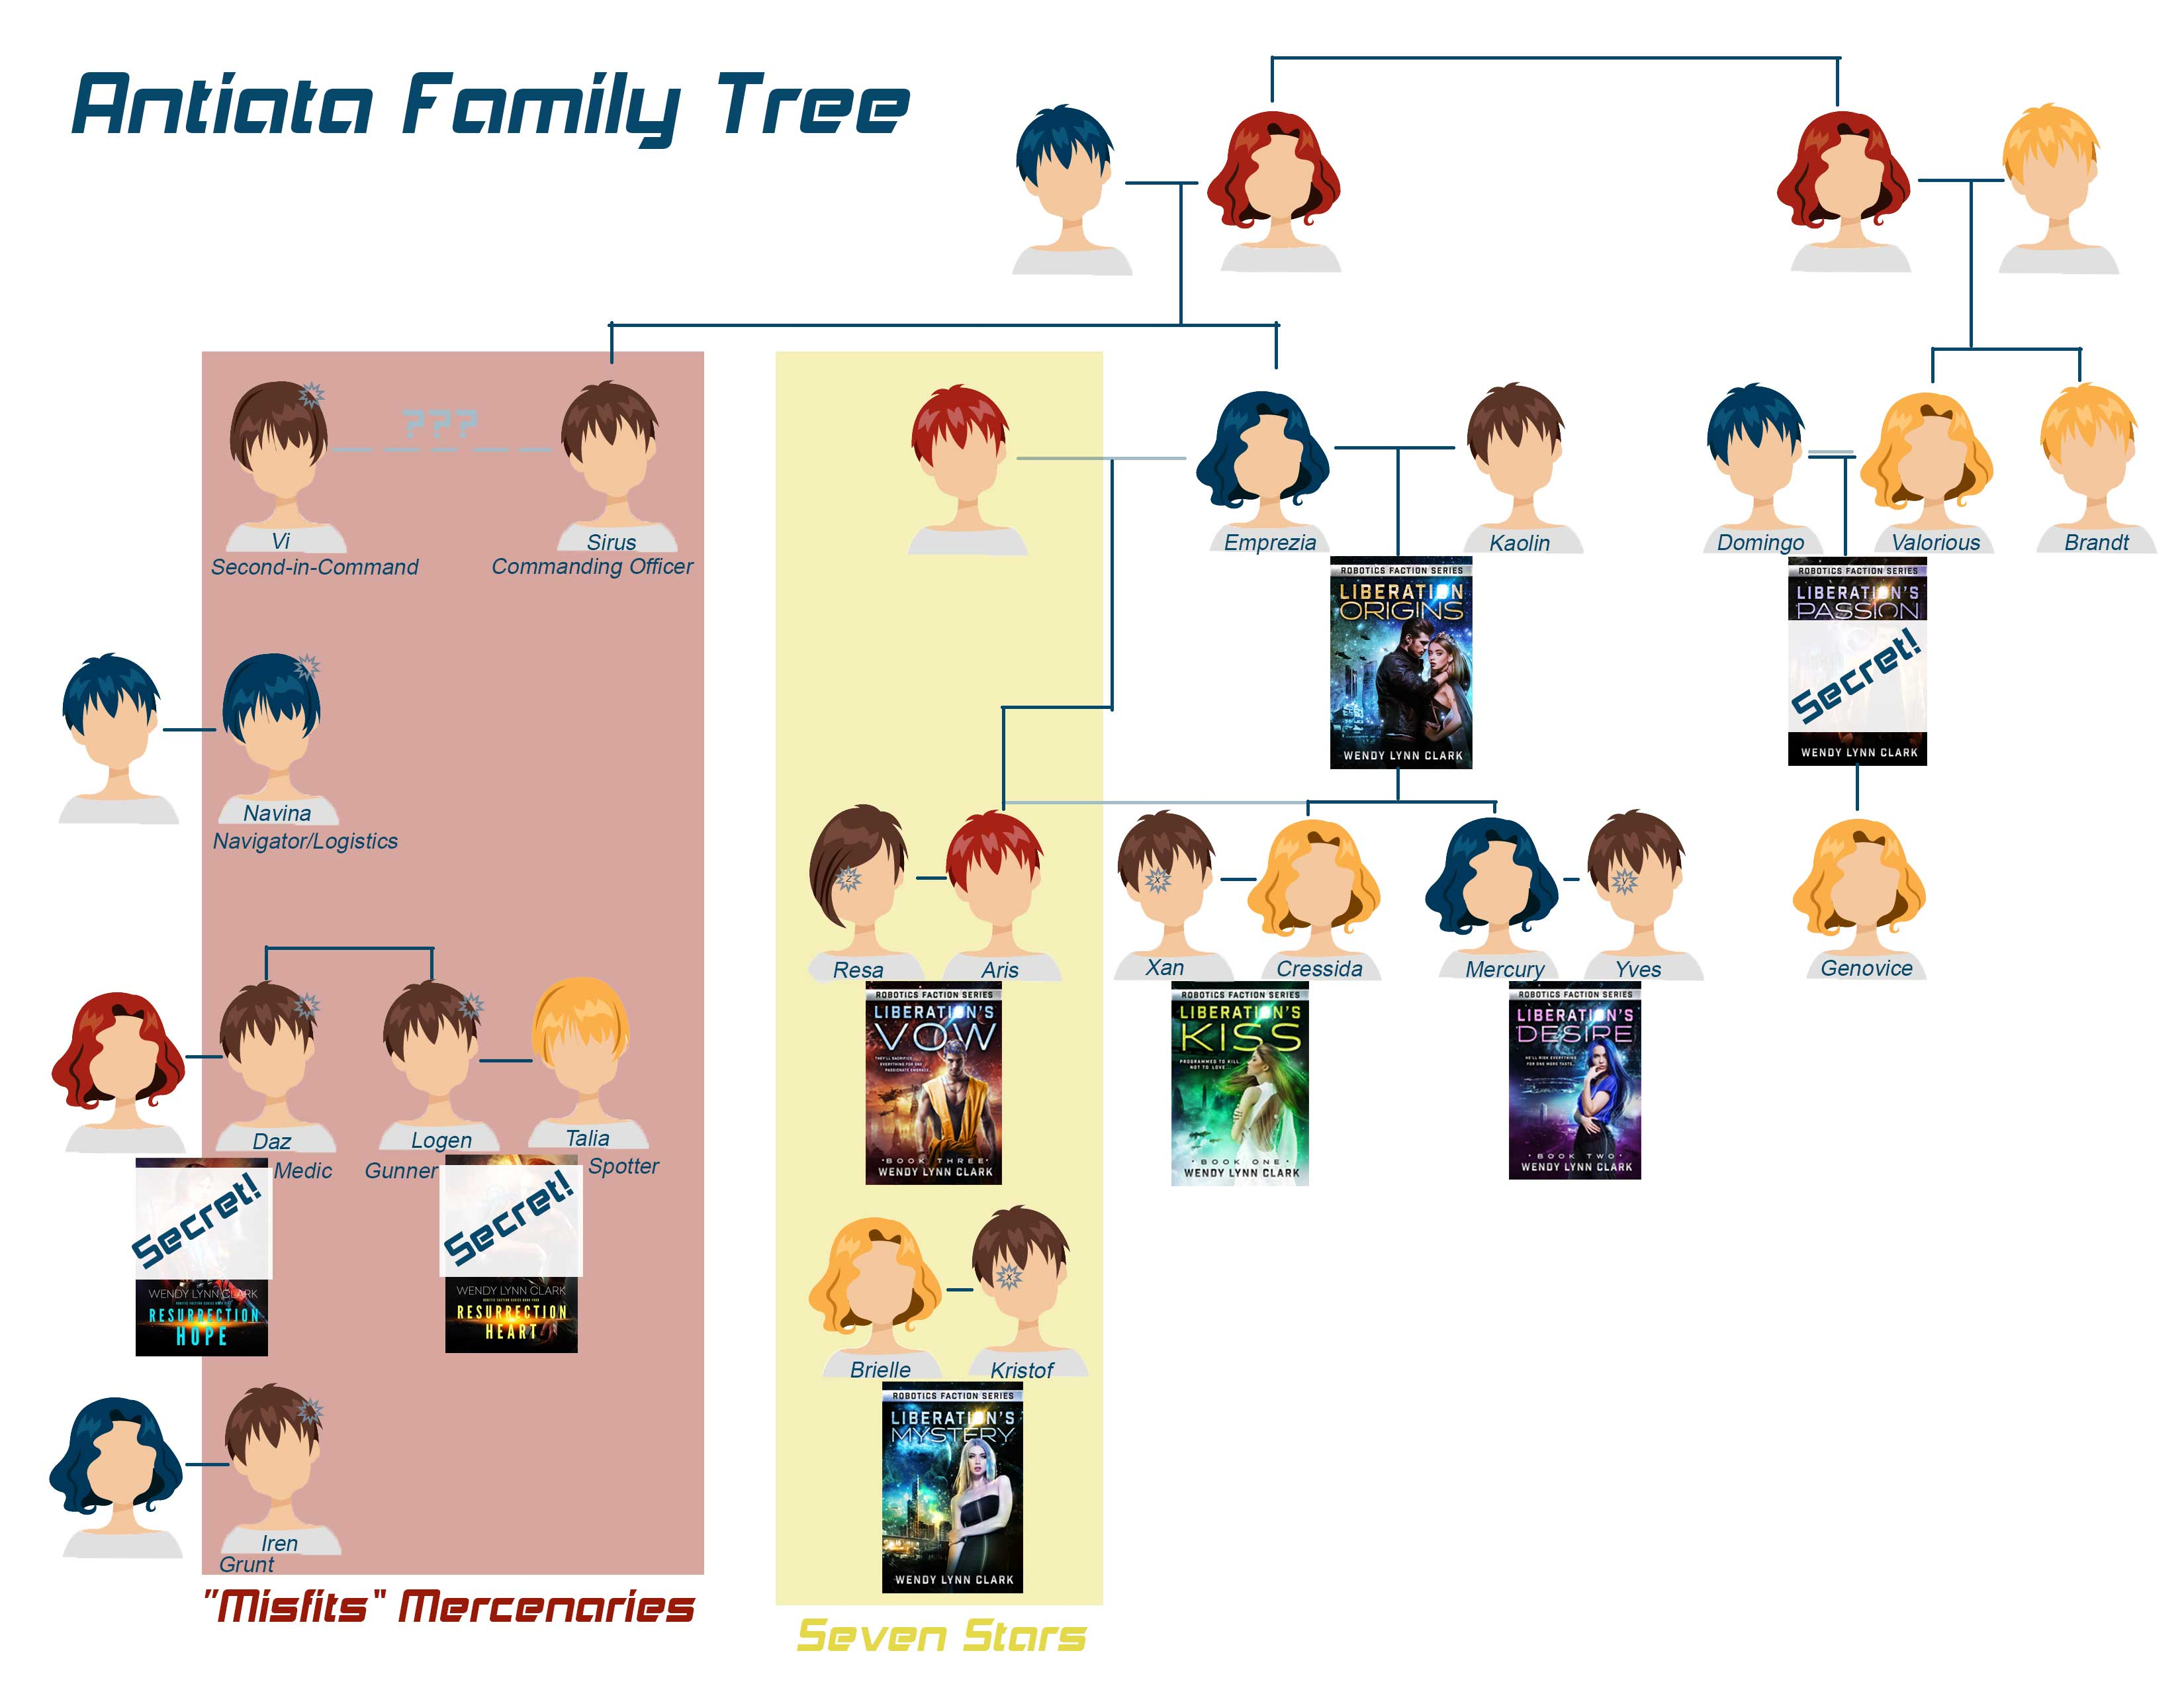 antiata-family-tree